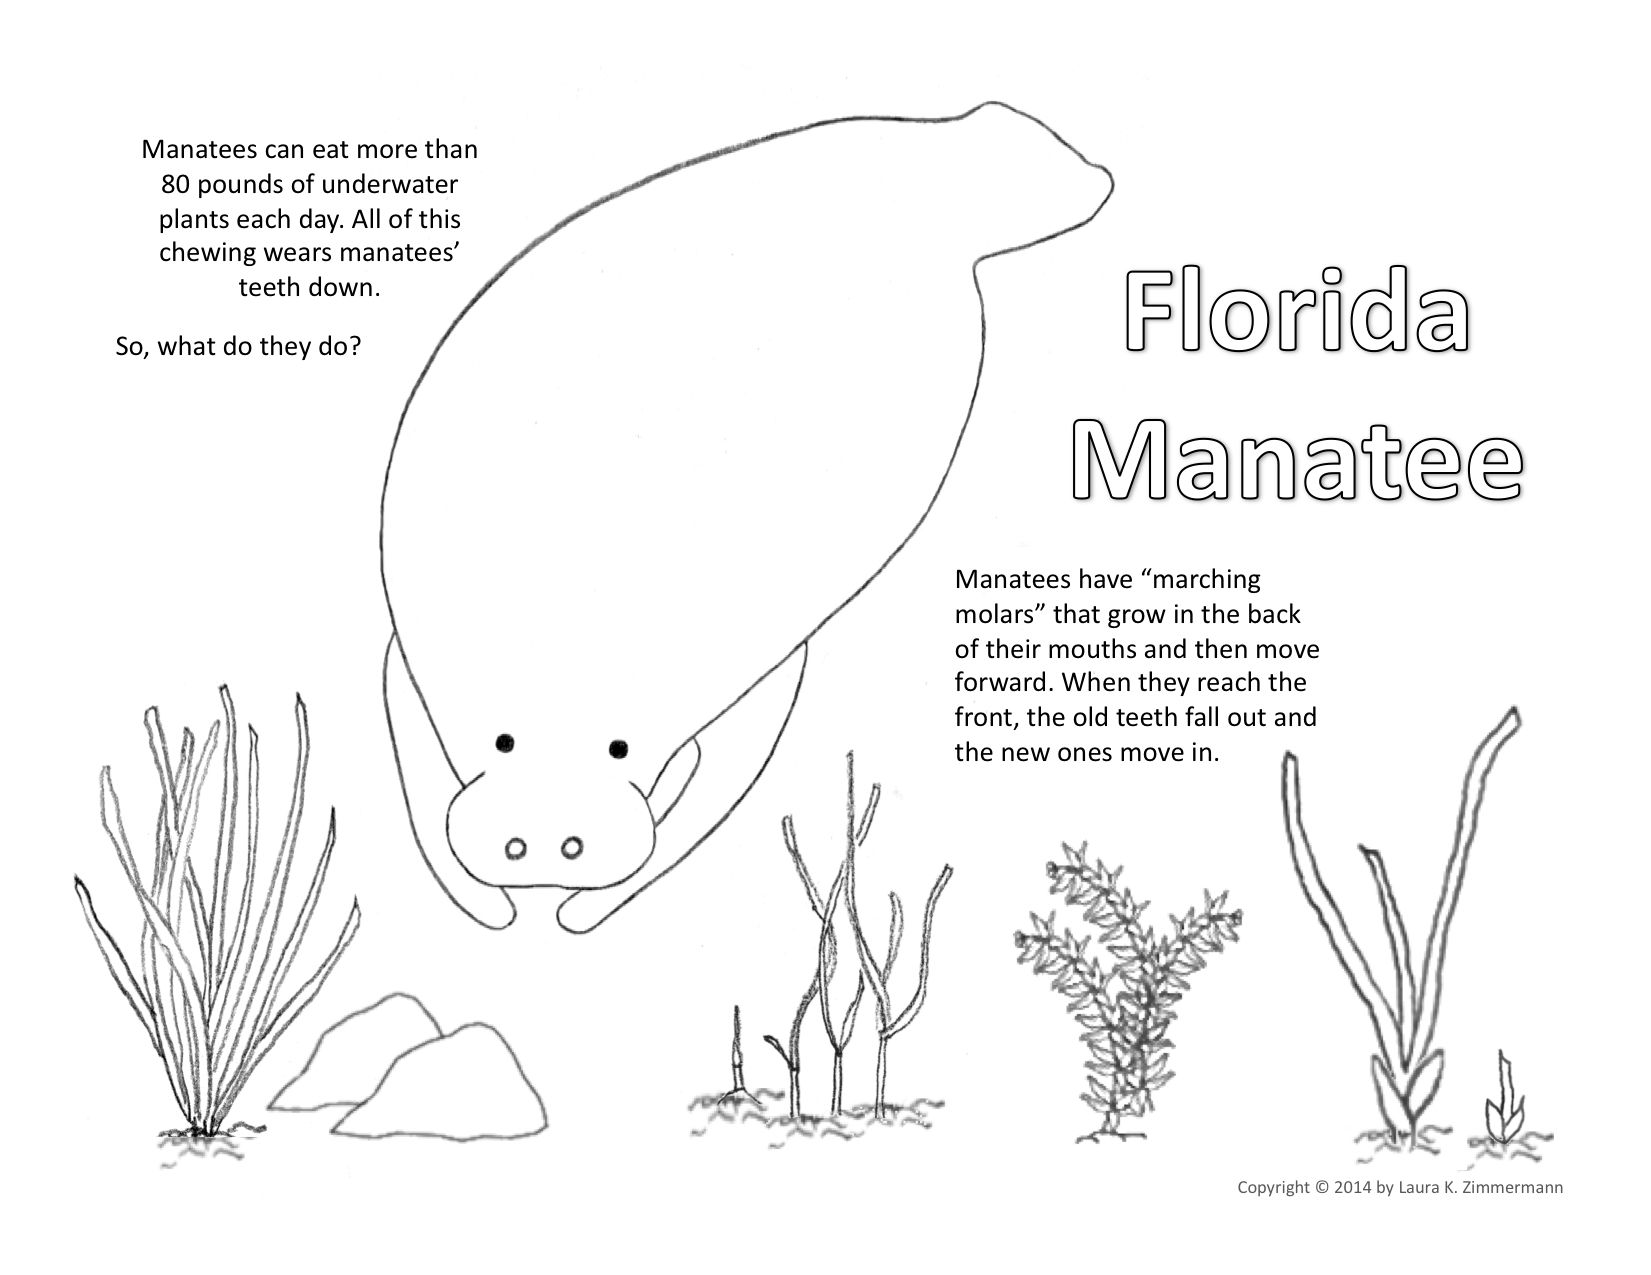 Manatee Coloring Page   Coloring and Activity Pages   Pinterest ...